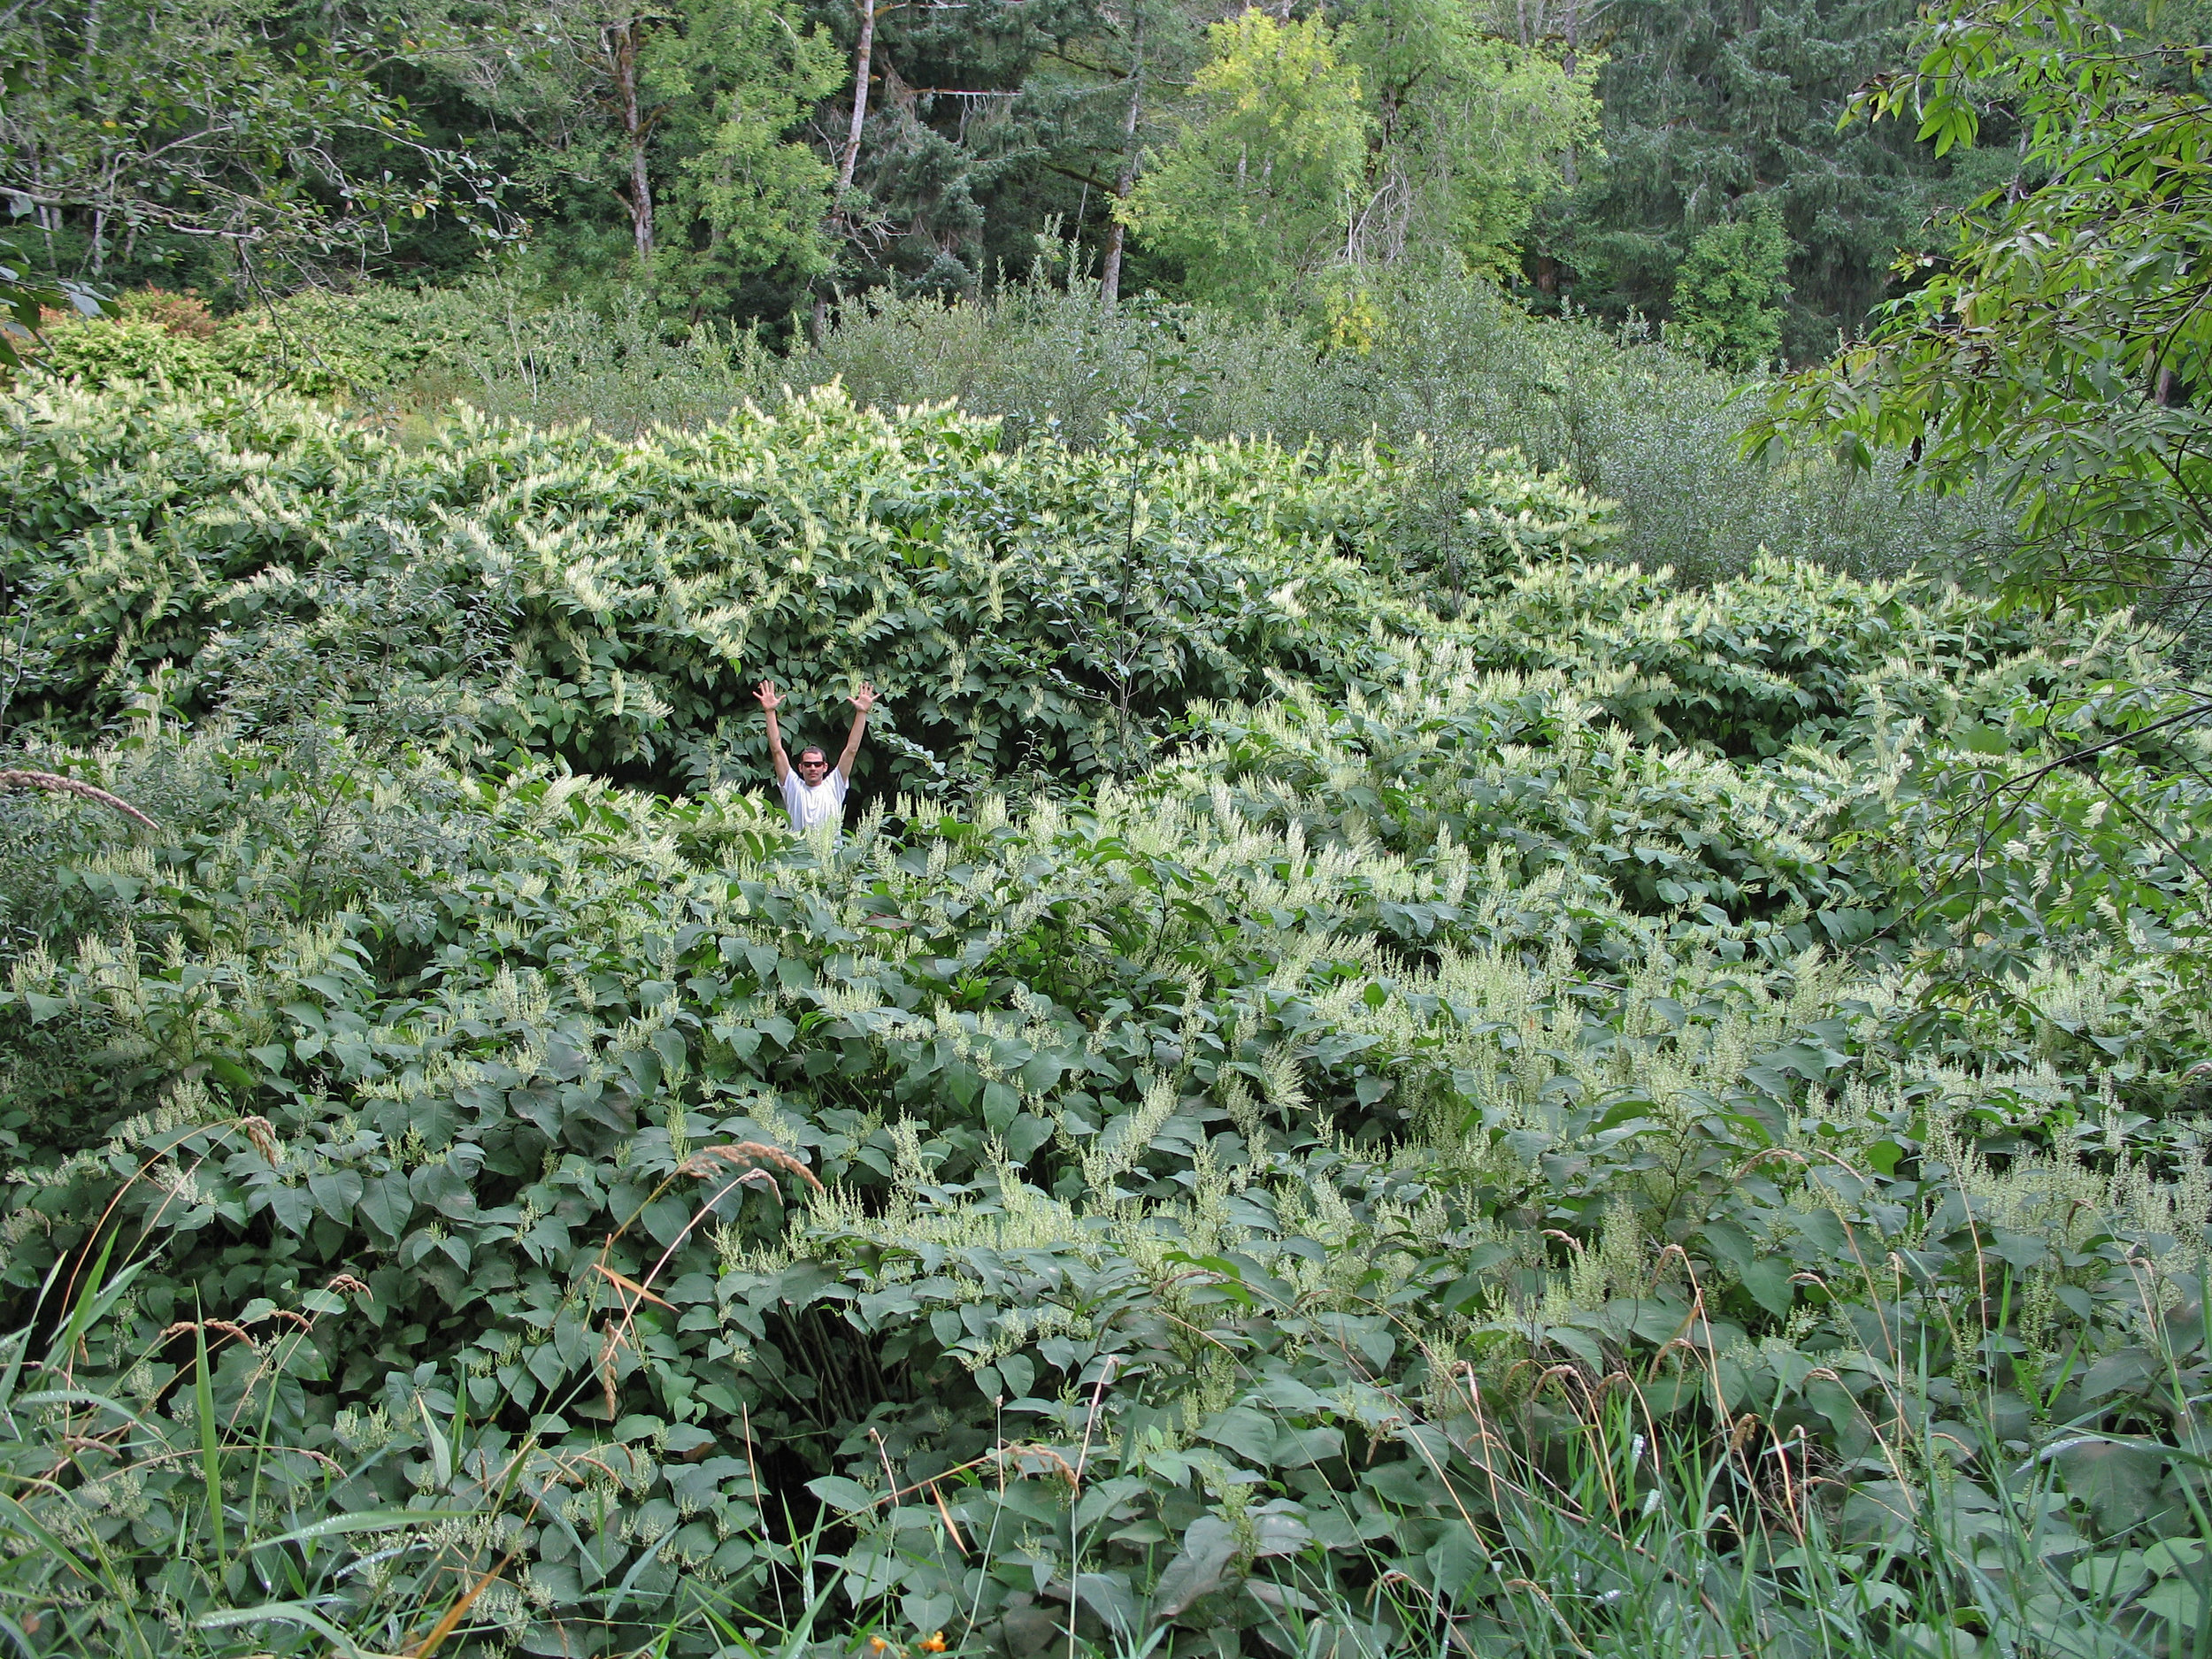 Lost in the knotweed patch